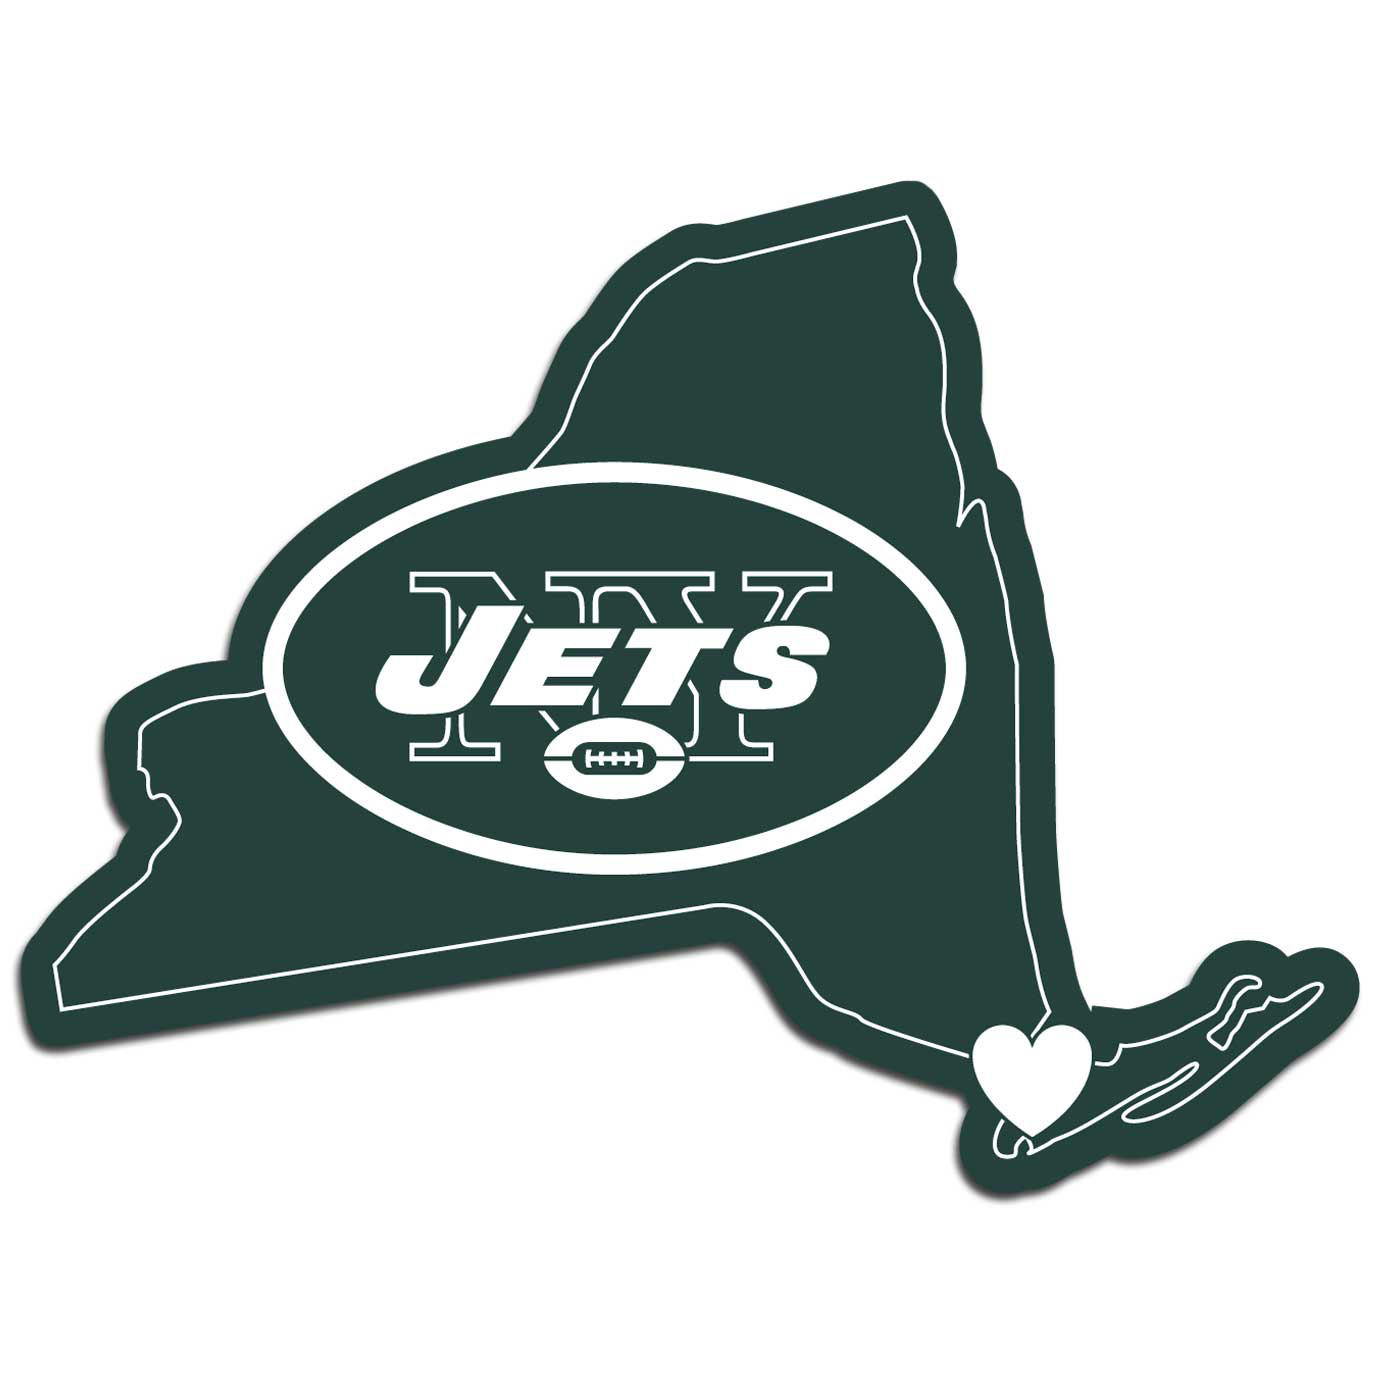 New York Jets Home State Decal - It's a home state decal with a sporty twist! This New York Jets decal feature the team logo over a silhouette of the state in team colors and a heart marking the home of the team. The decal is approximately 5 inches on repositionable vinyl.